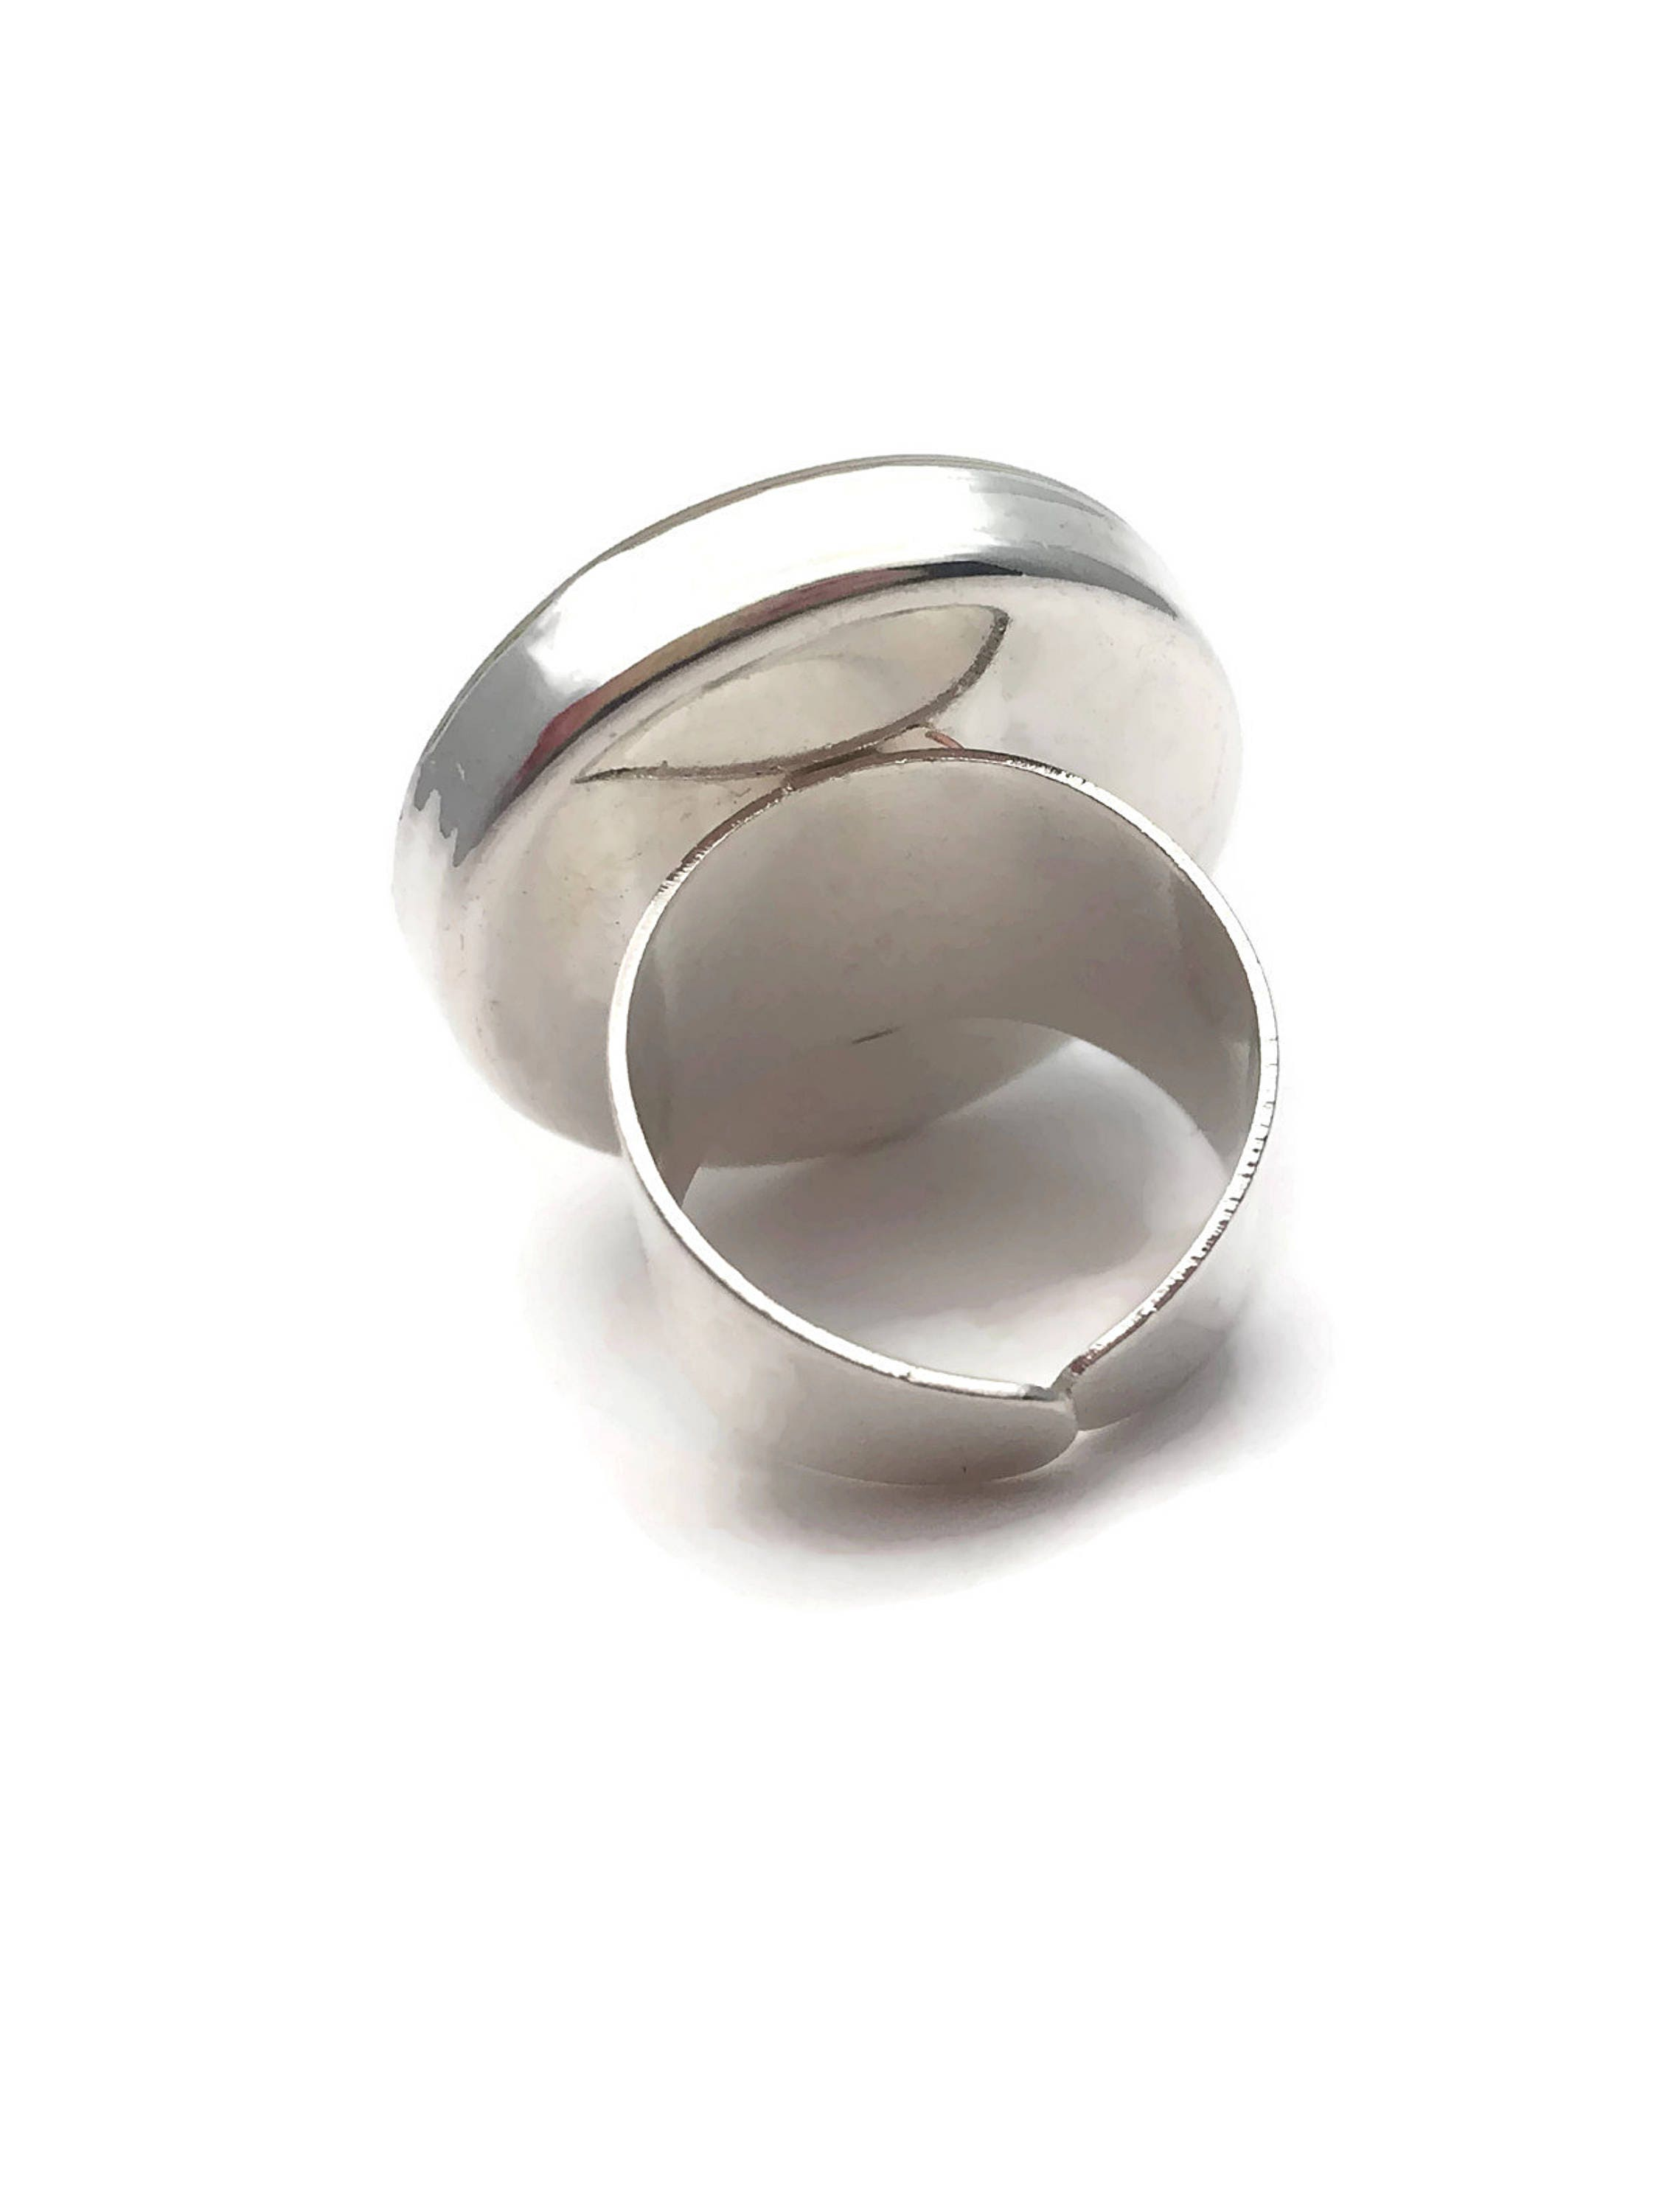 portfolio steel artist fine graham joann ring rings jewelry silver sterling and abstract